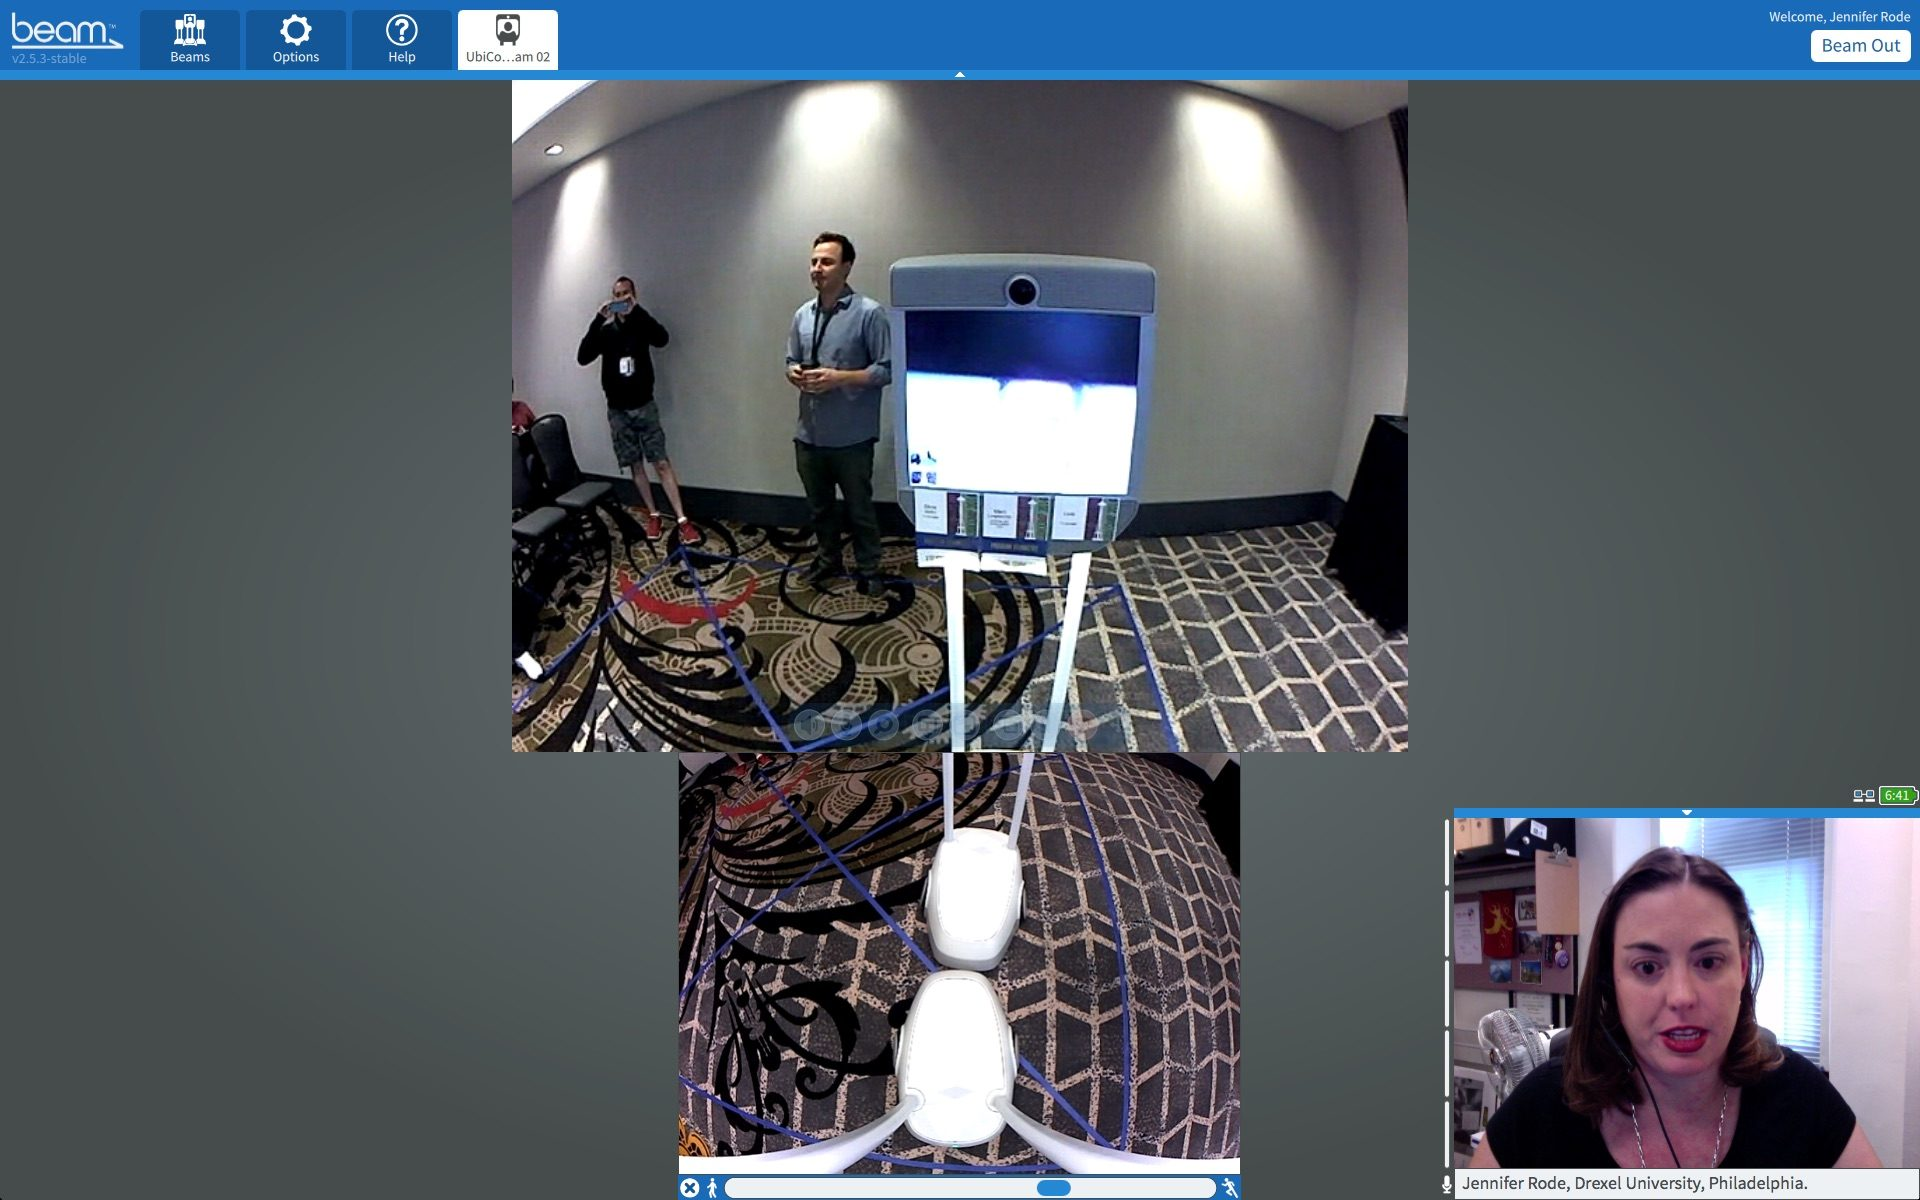 Beam at the Ubicomp Conference